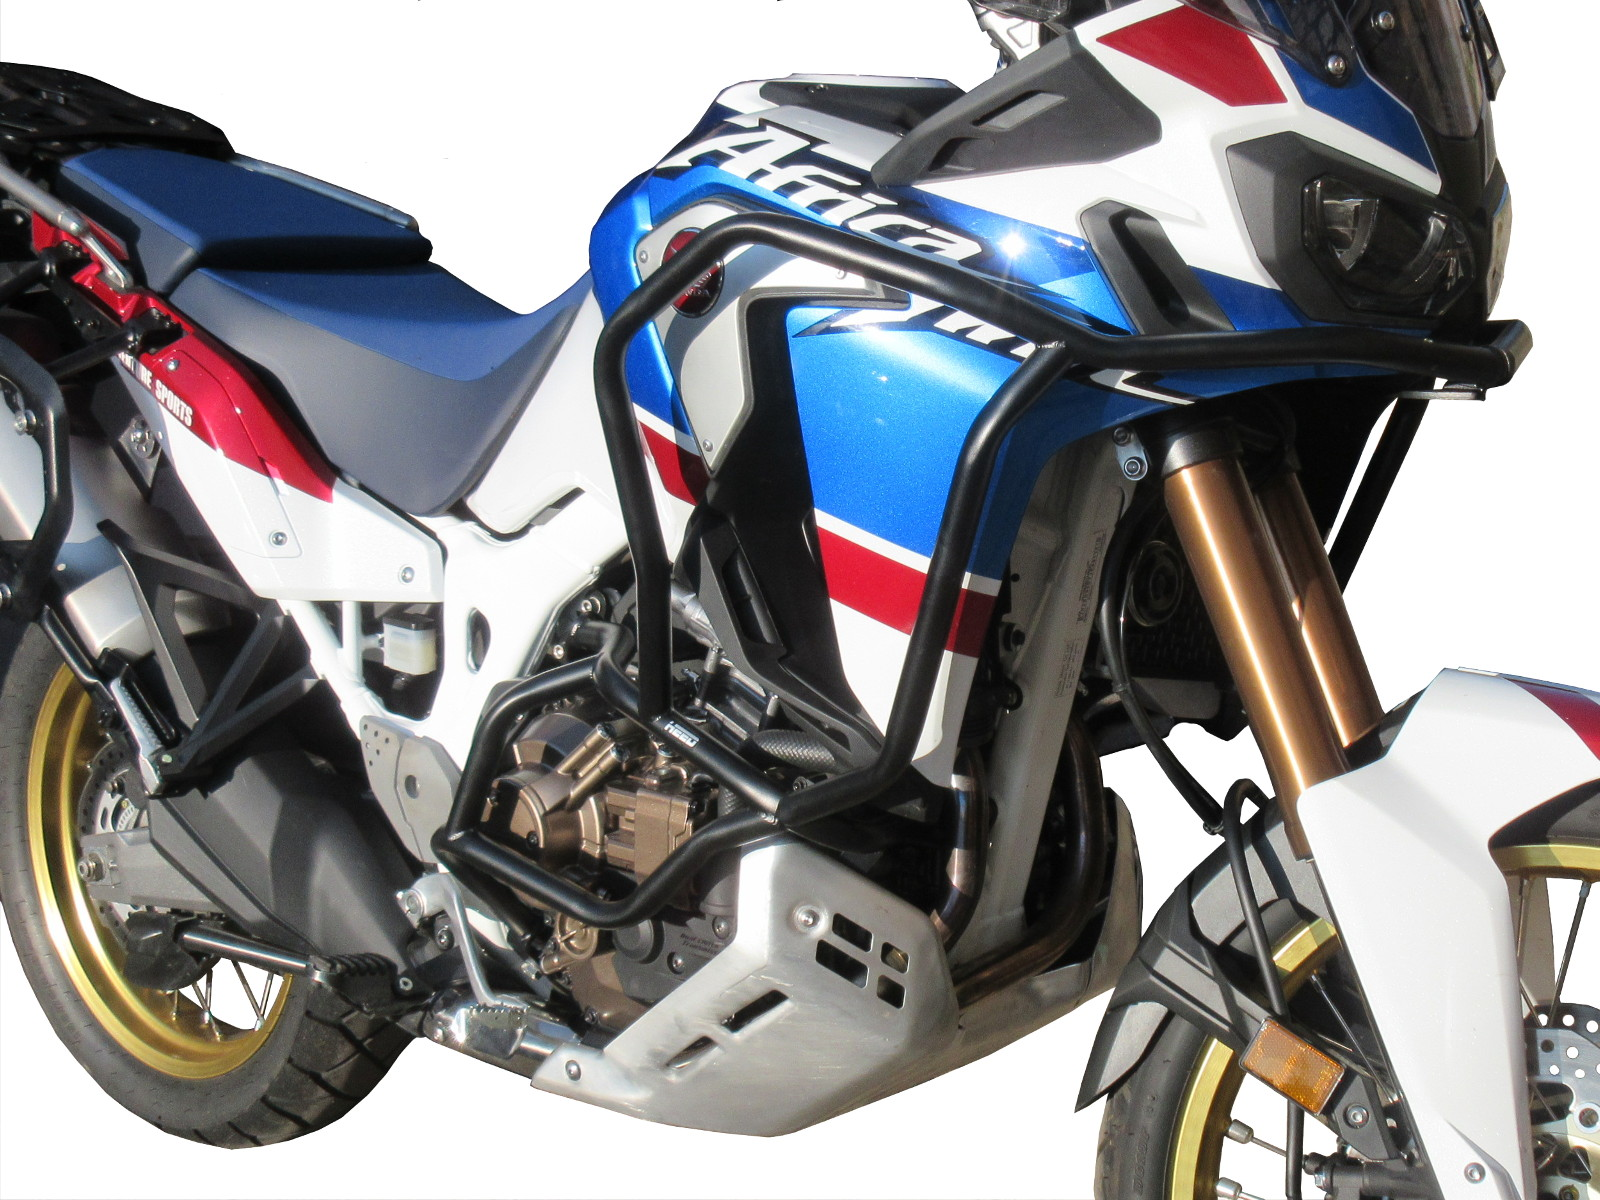 nero Bunker Paramotore HEED per CRF 1000 Africa Twin Adventure Sports